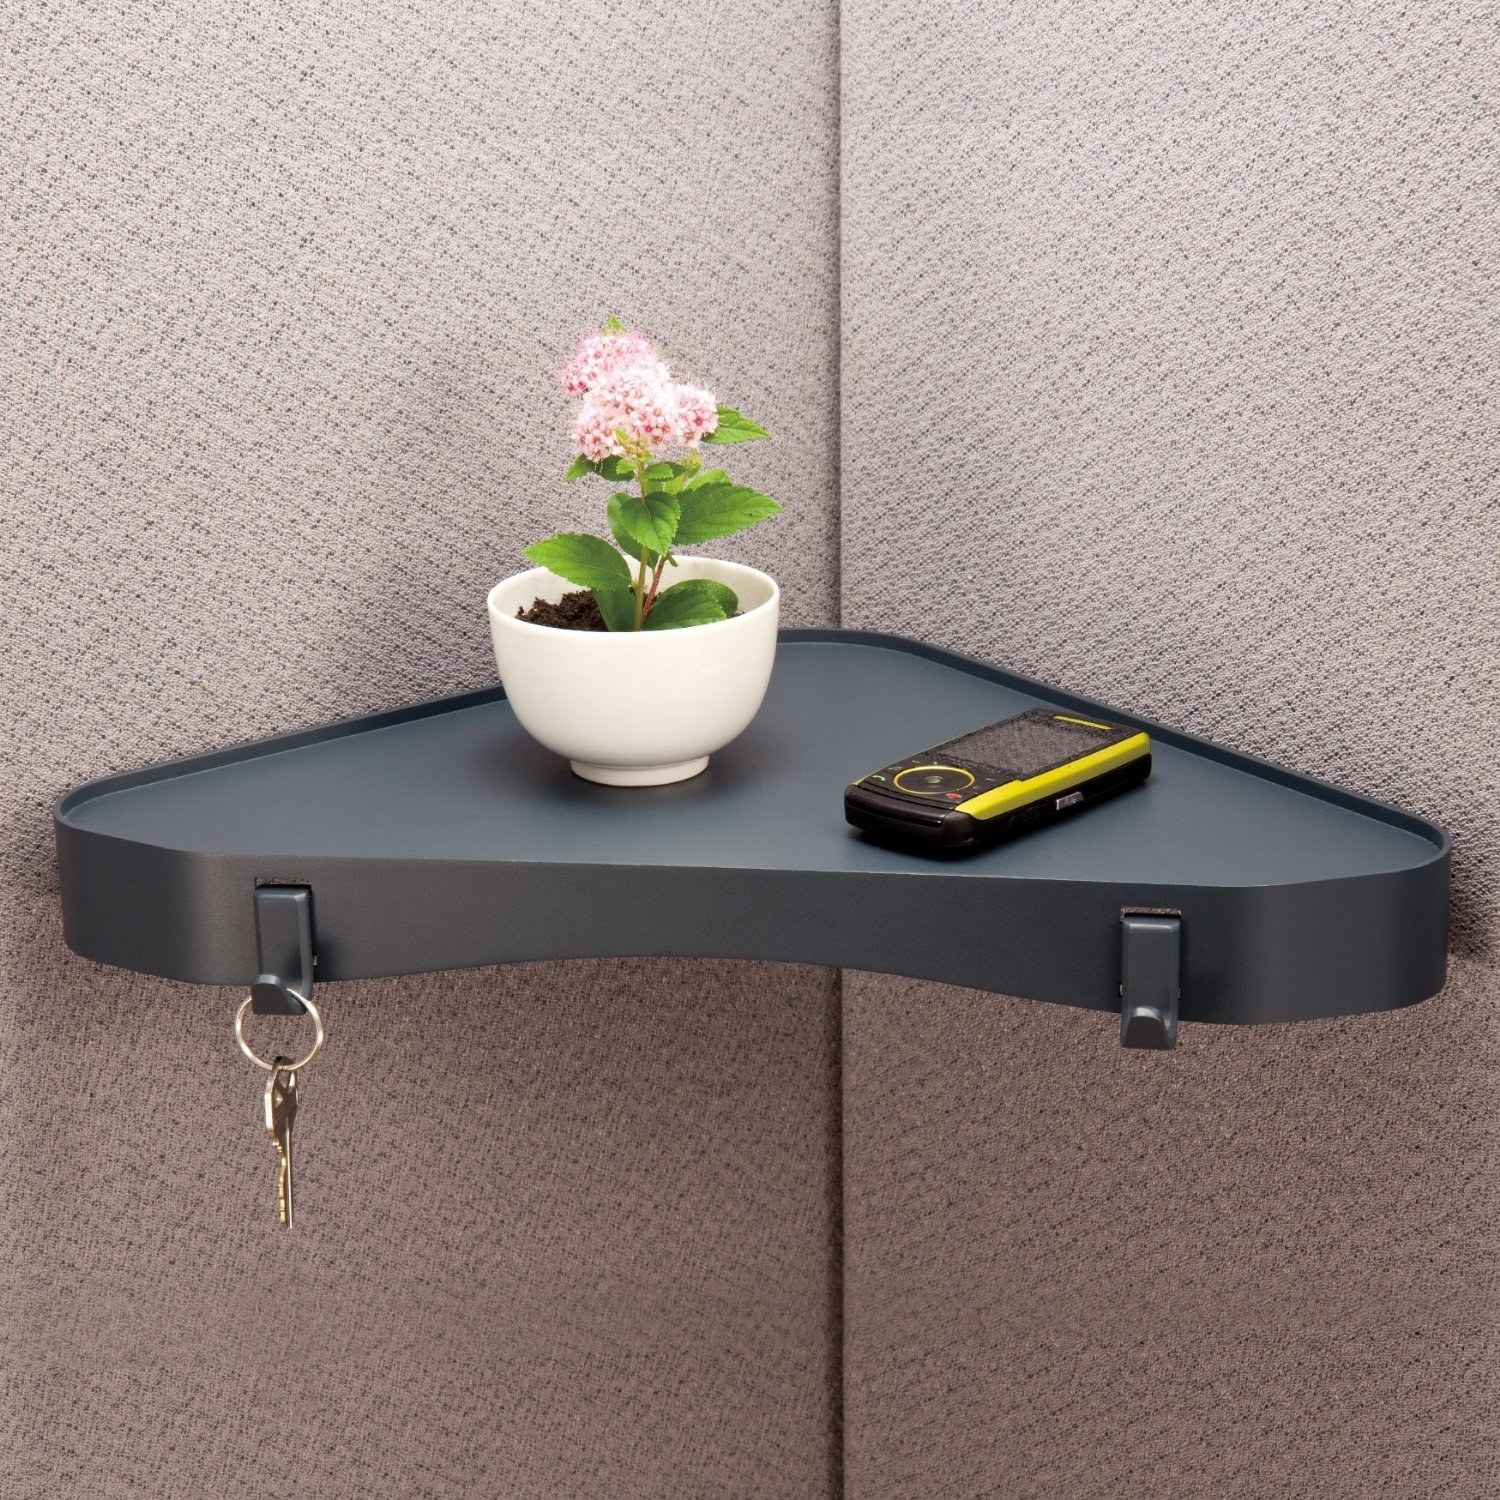 Increase your space by adding a corner shelf in your cubicle. & 34 Ways To Make Your Cubicle So Much Better